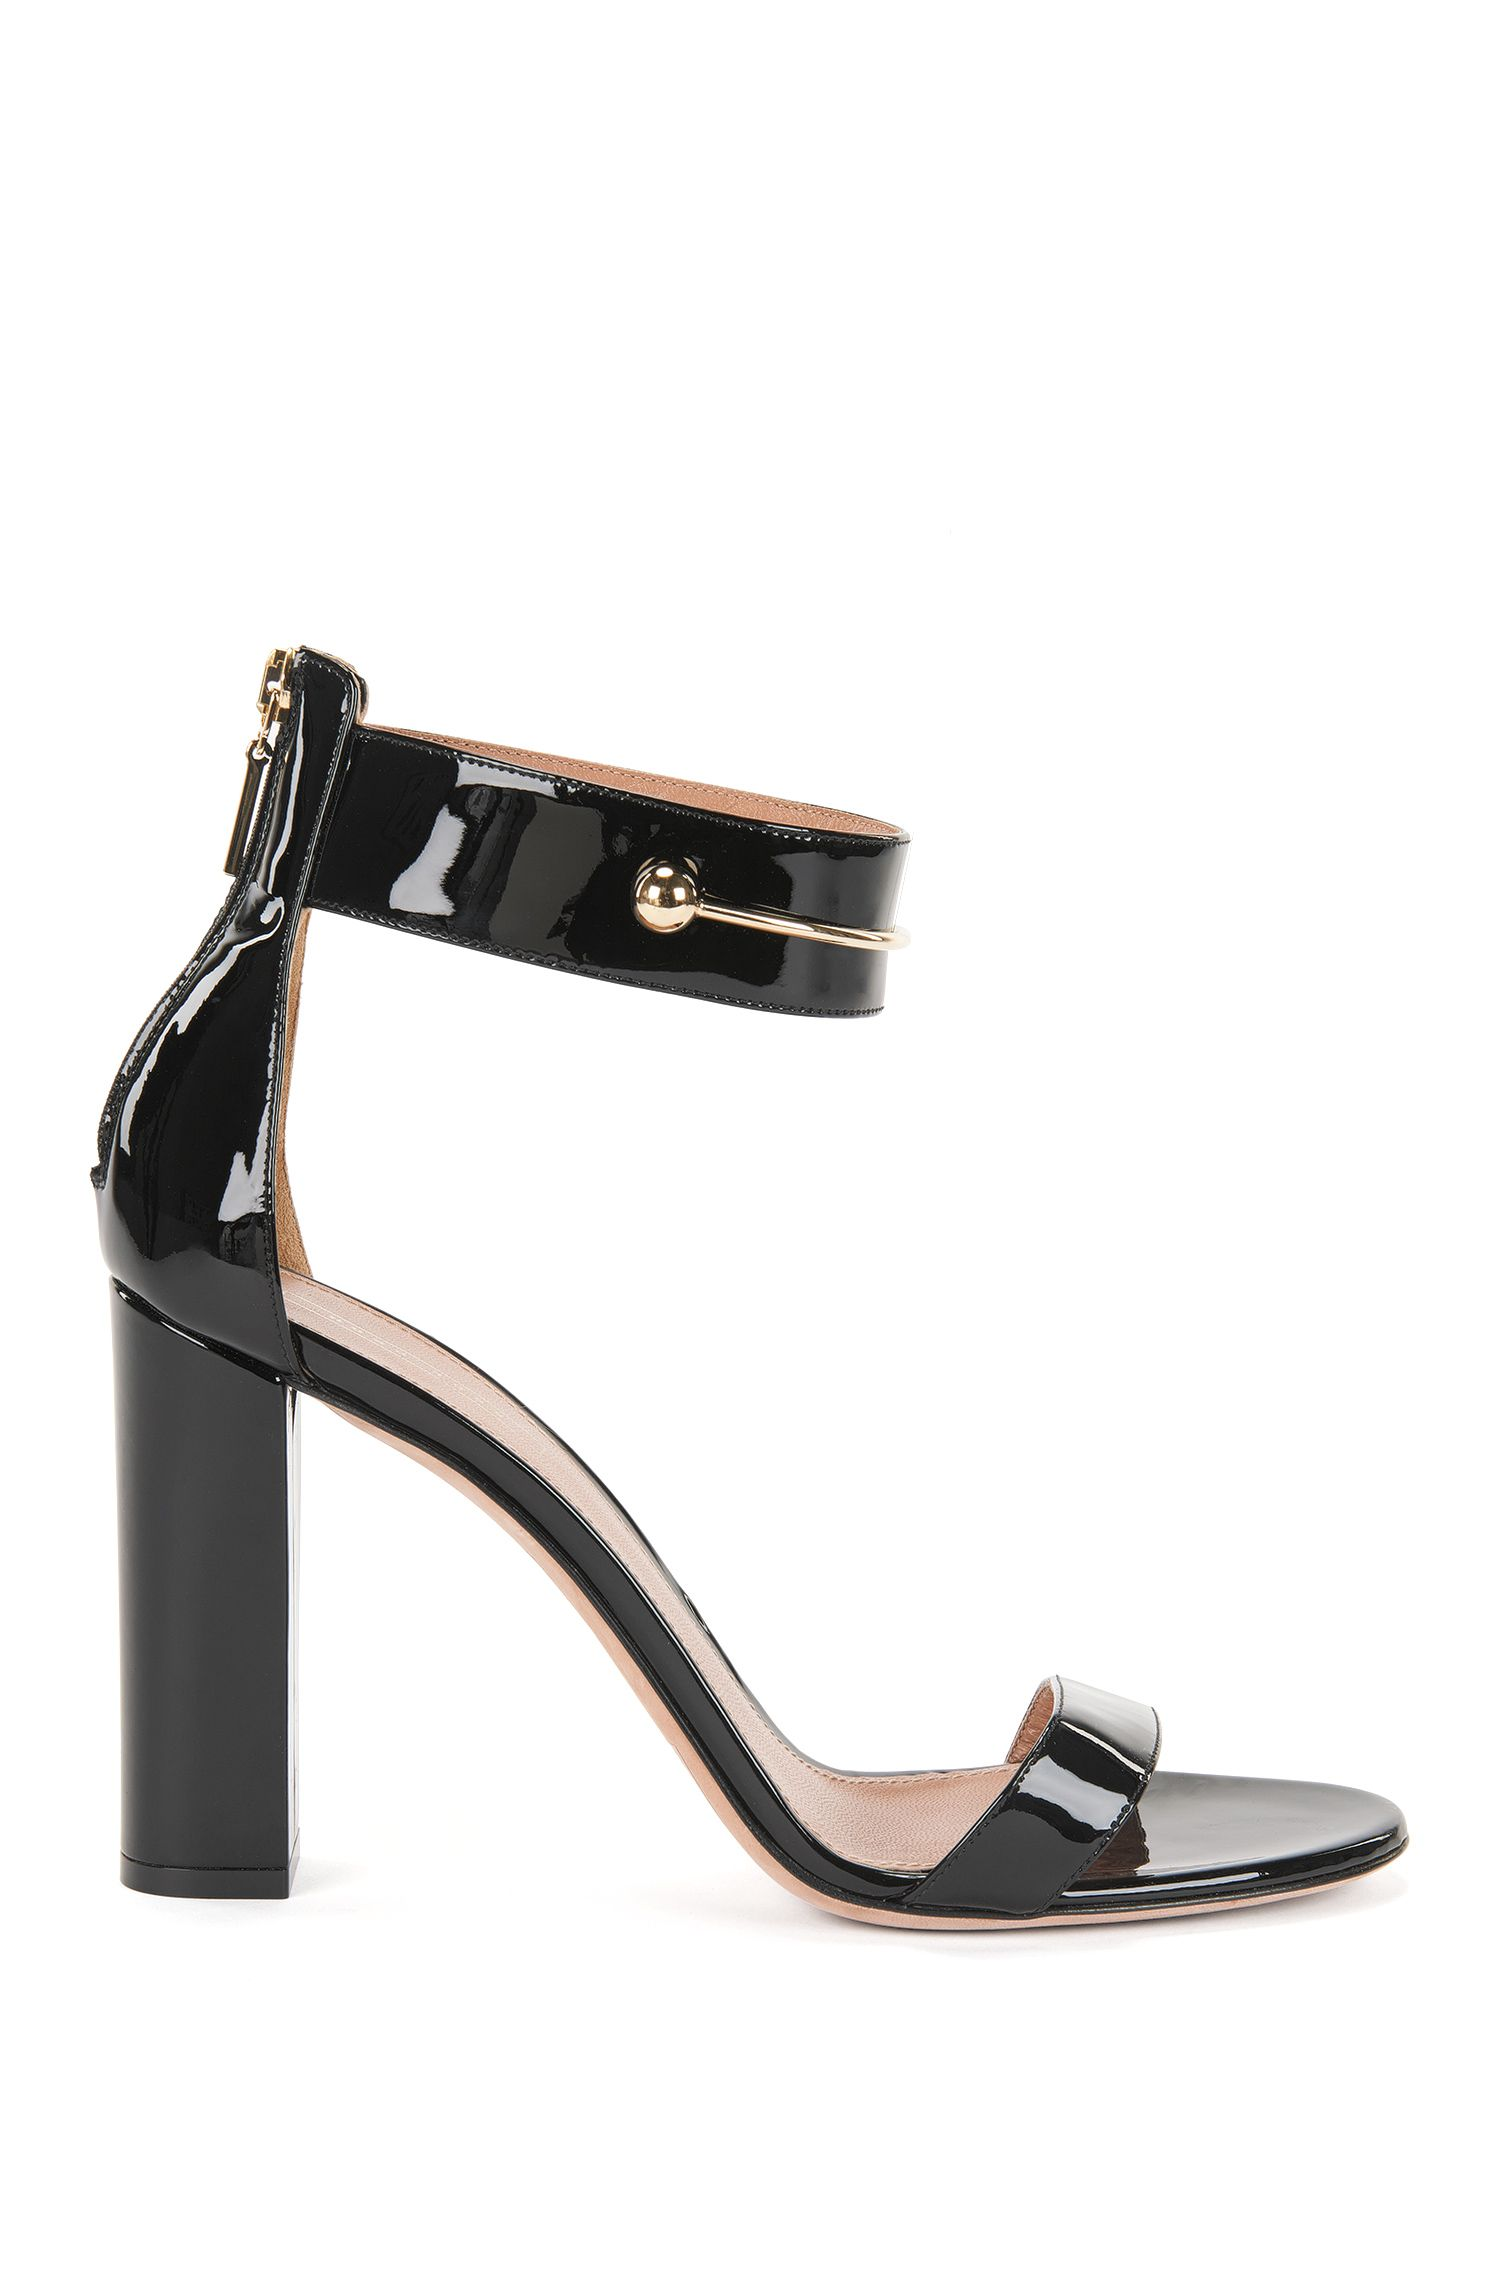 Patent leather sandal with detailed ankle strap